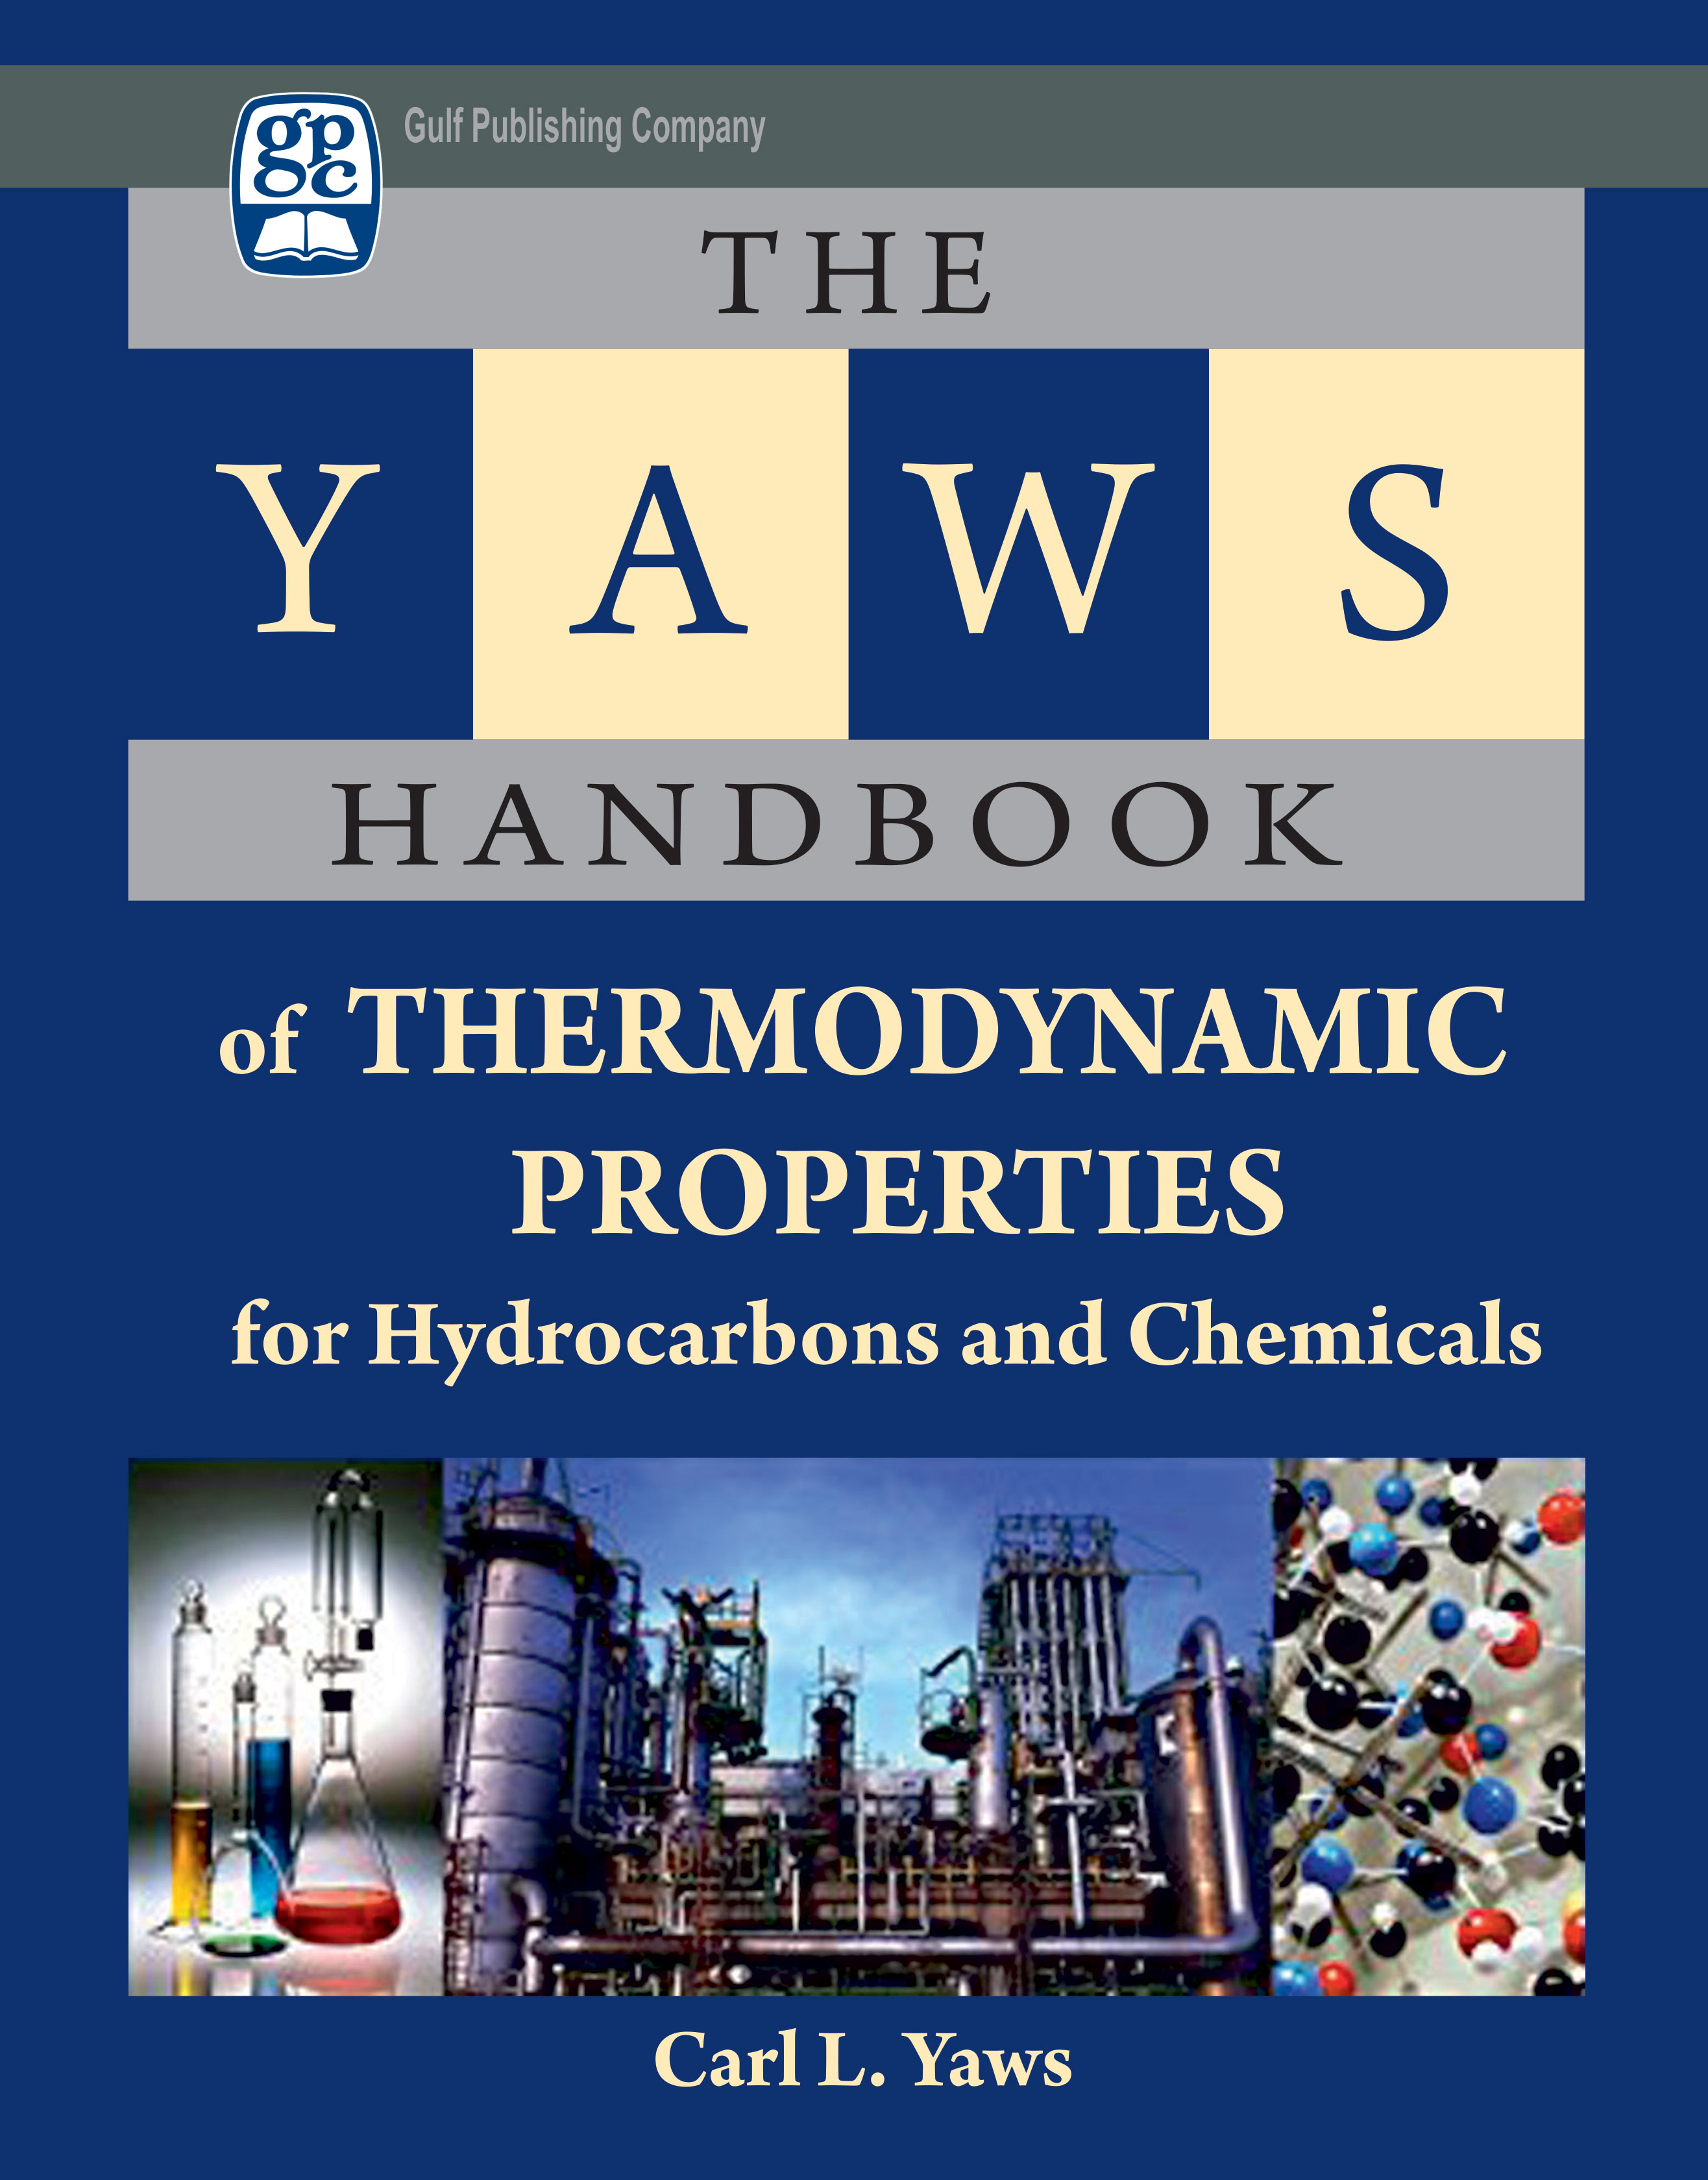 The Yaws Handbook Of Thermodynamic Properties For Hydrocarbons And Chemicals  Carl L  Yaws